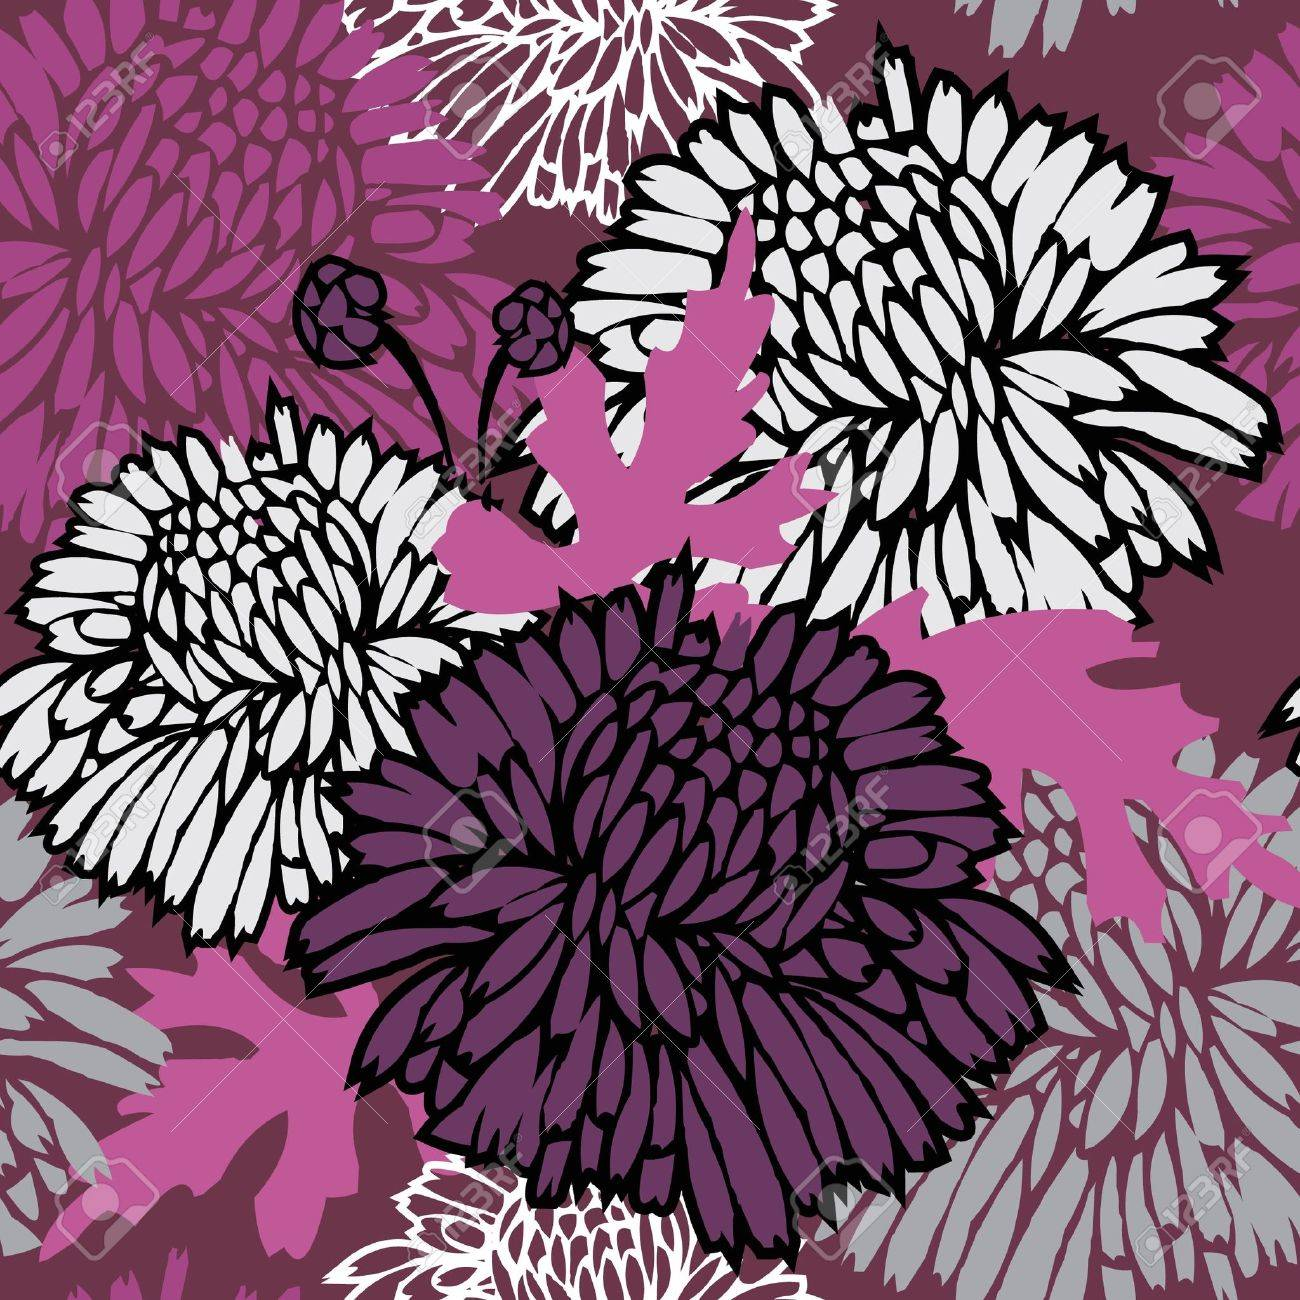 Pink floral seamless vector background floral hrysanthemum seamless - Seamless Pattern With Flowers Floral Background Stock Vector 14150955